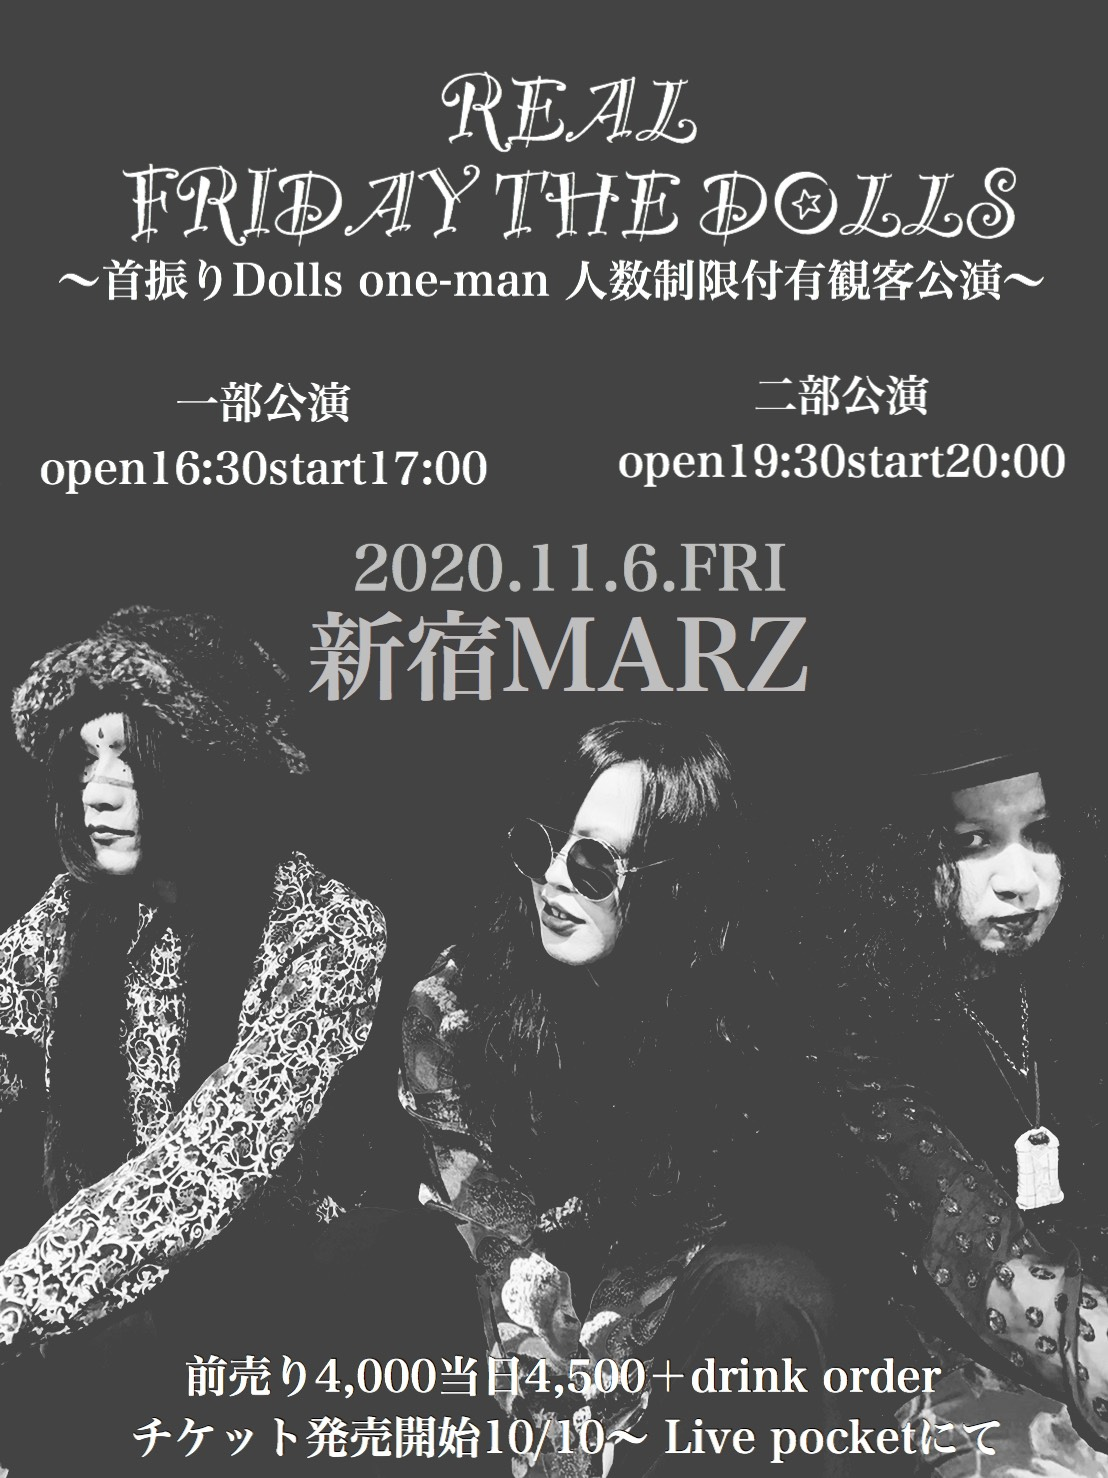 REAL FRIDAY THE DOLLS 〜首振りDolls one-man 人数制限付有観客公演〜【2部 20:00〜の回】